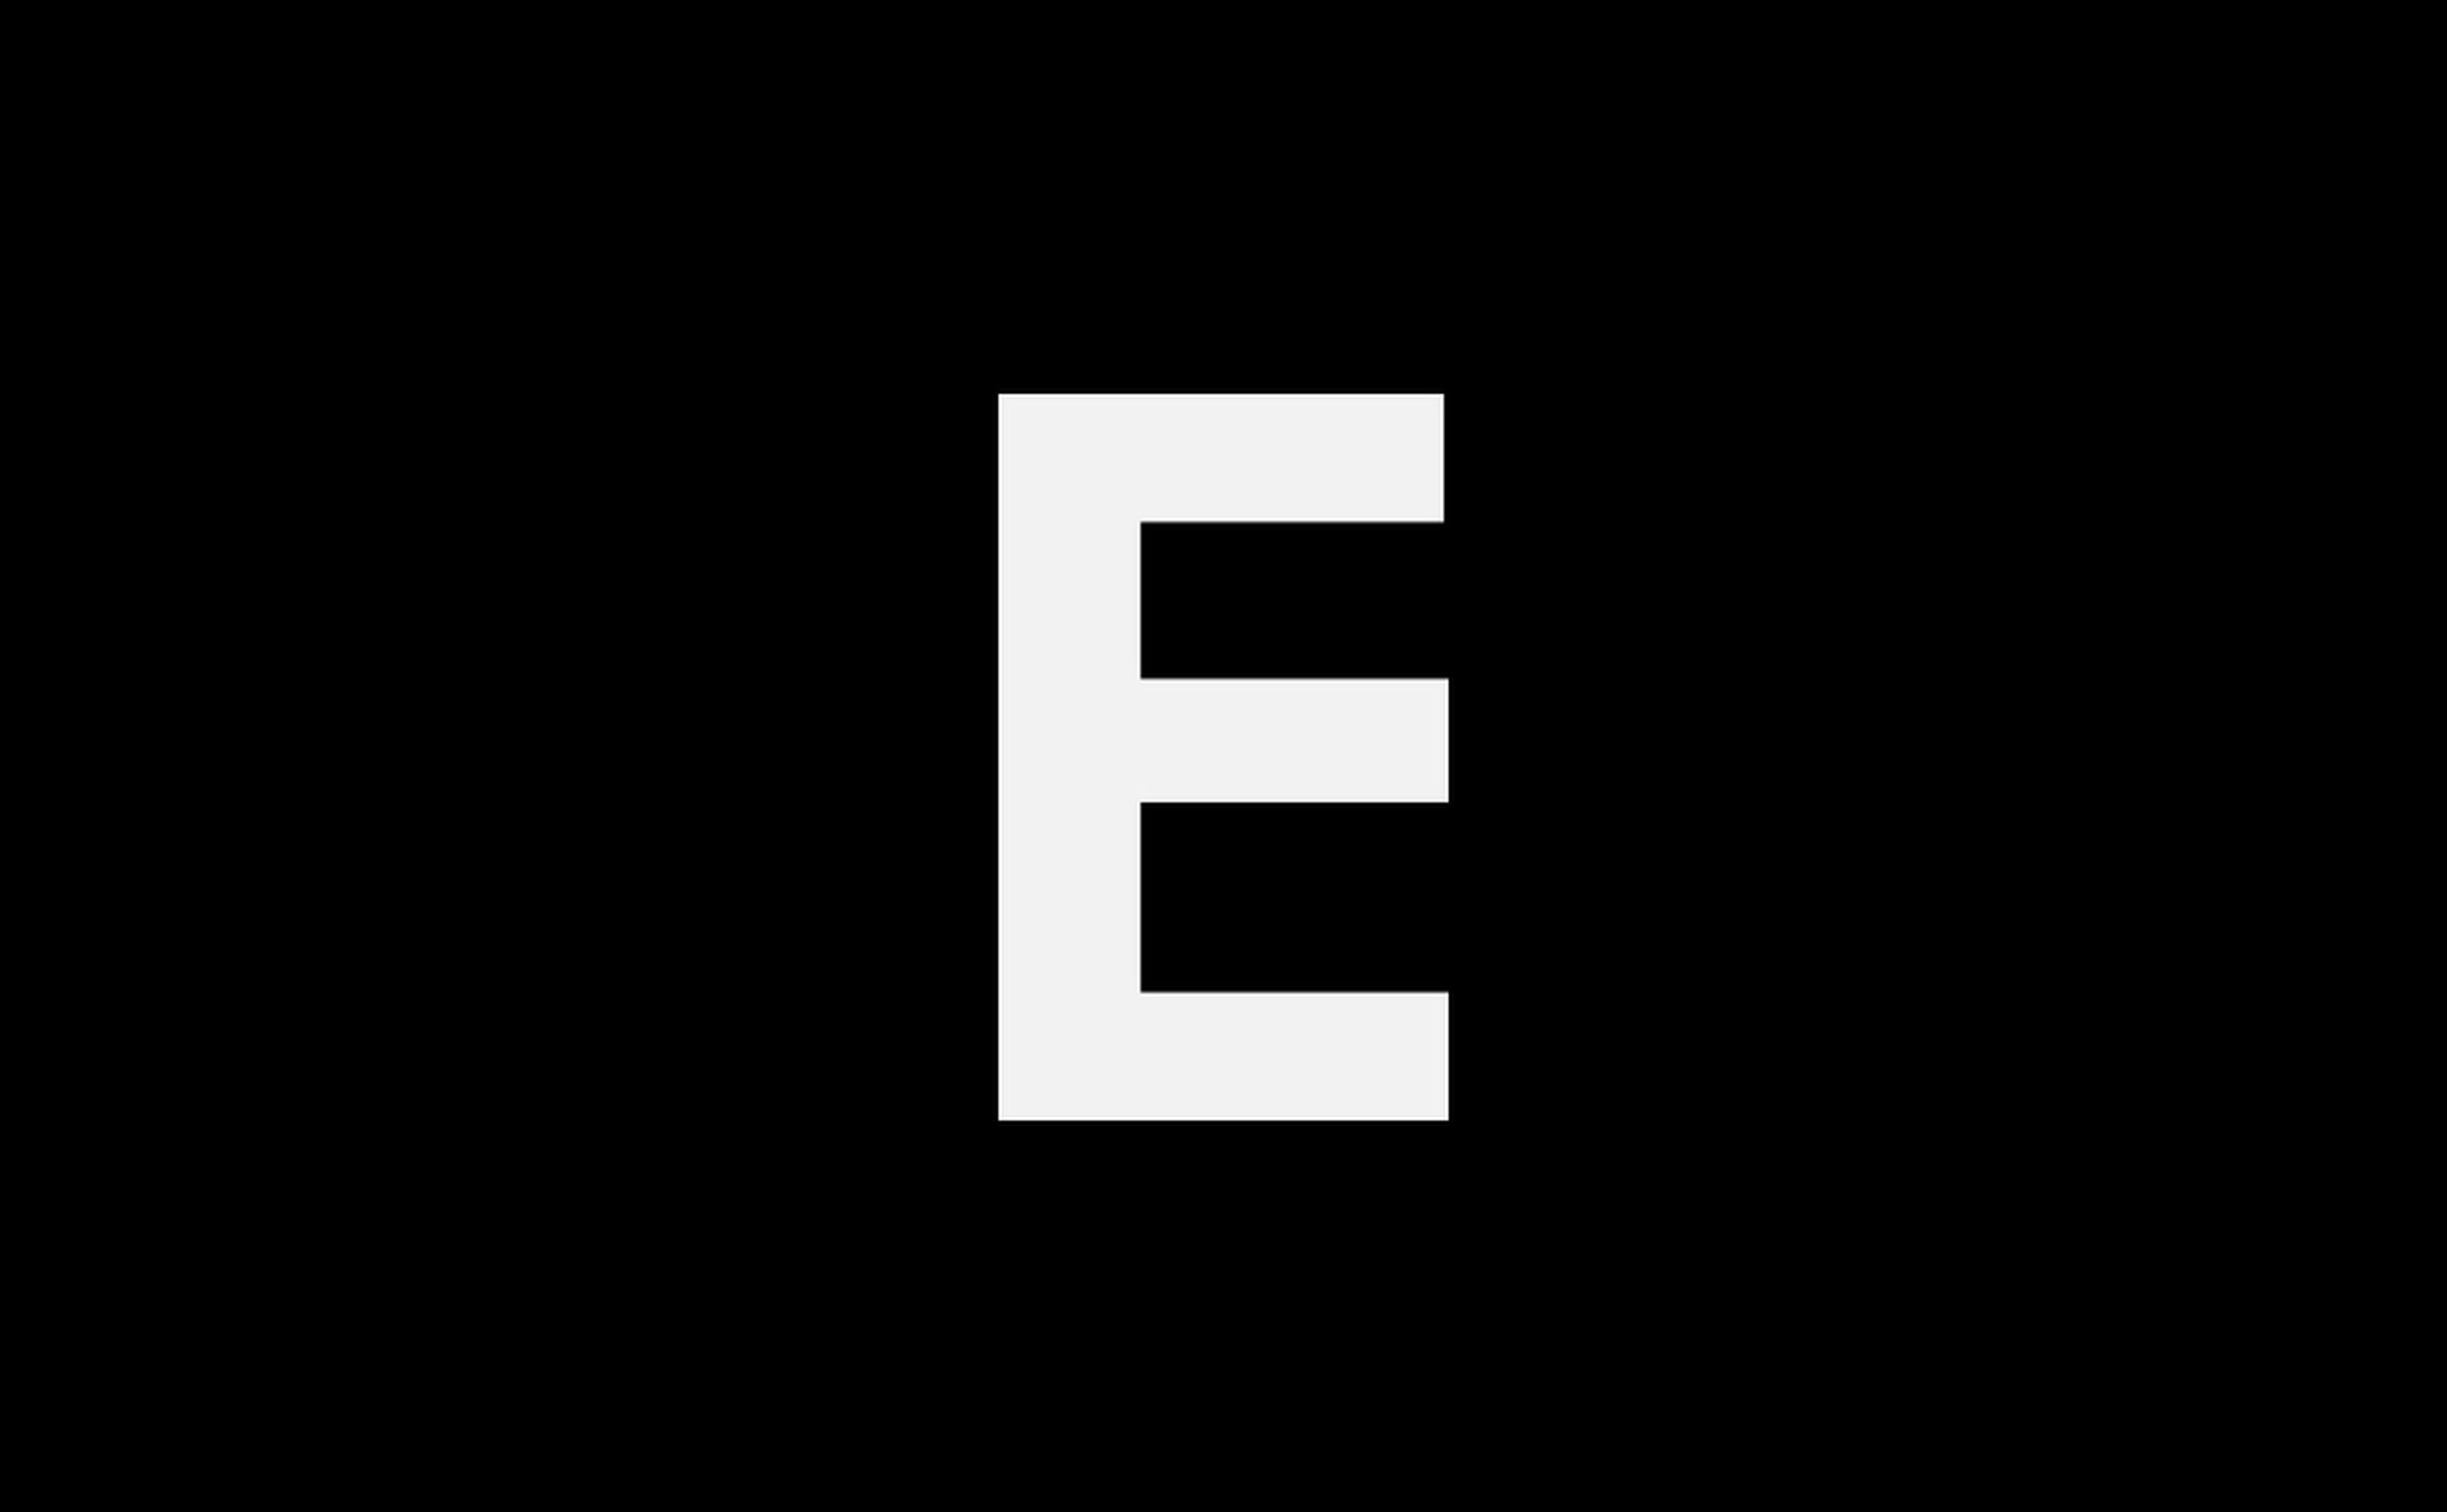 Patagonian mountains of torres del paine national park, chile